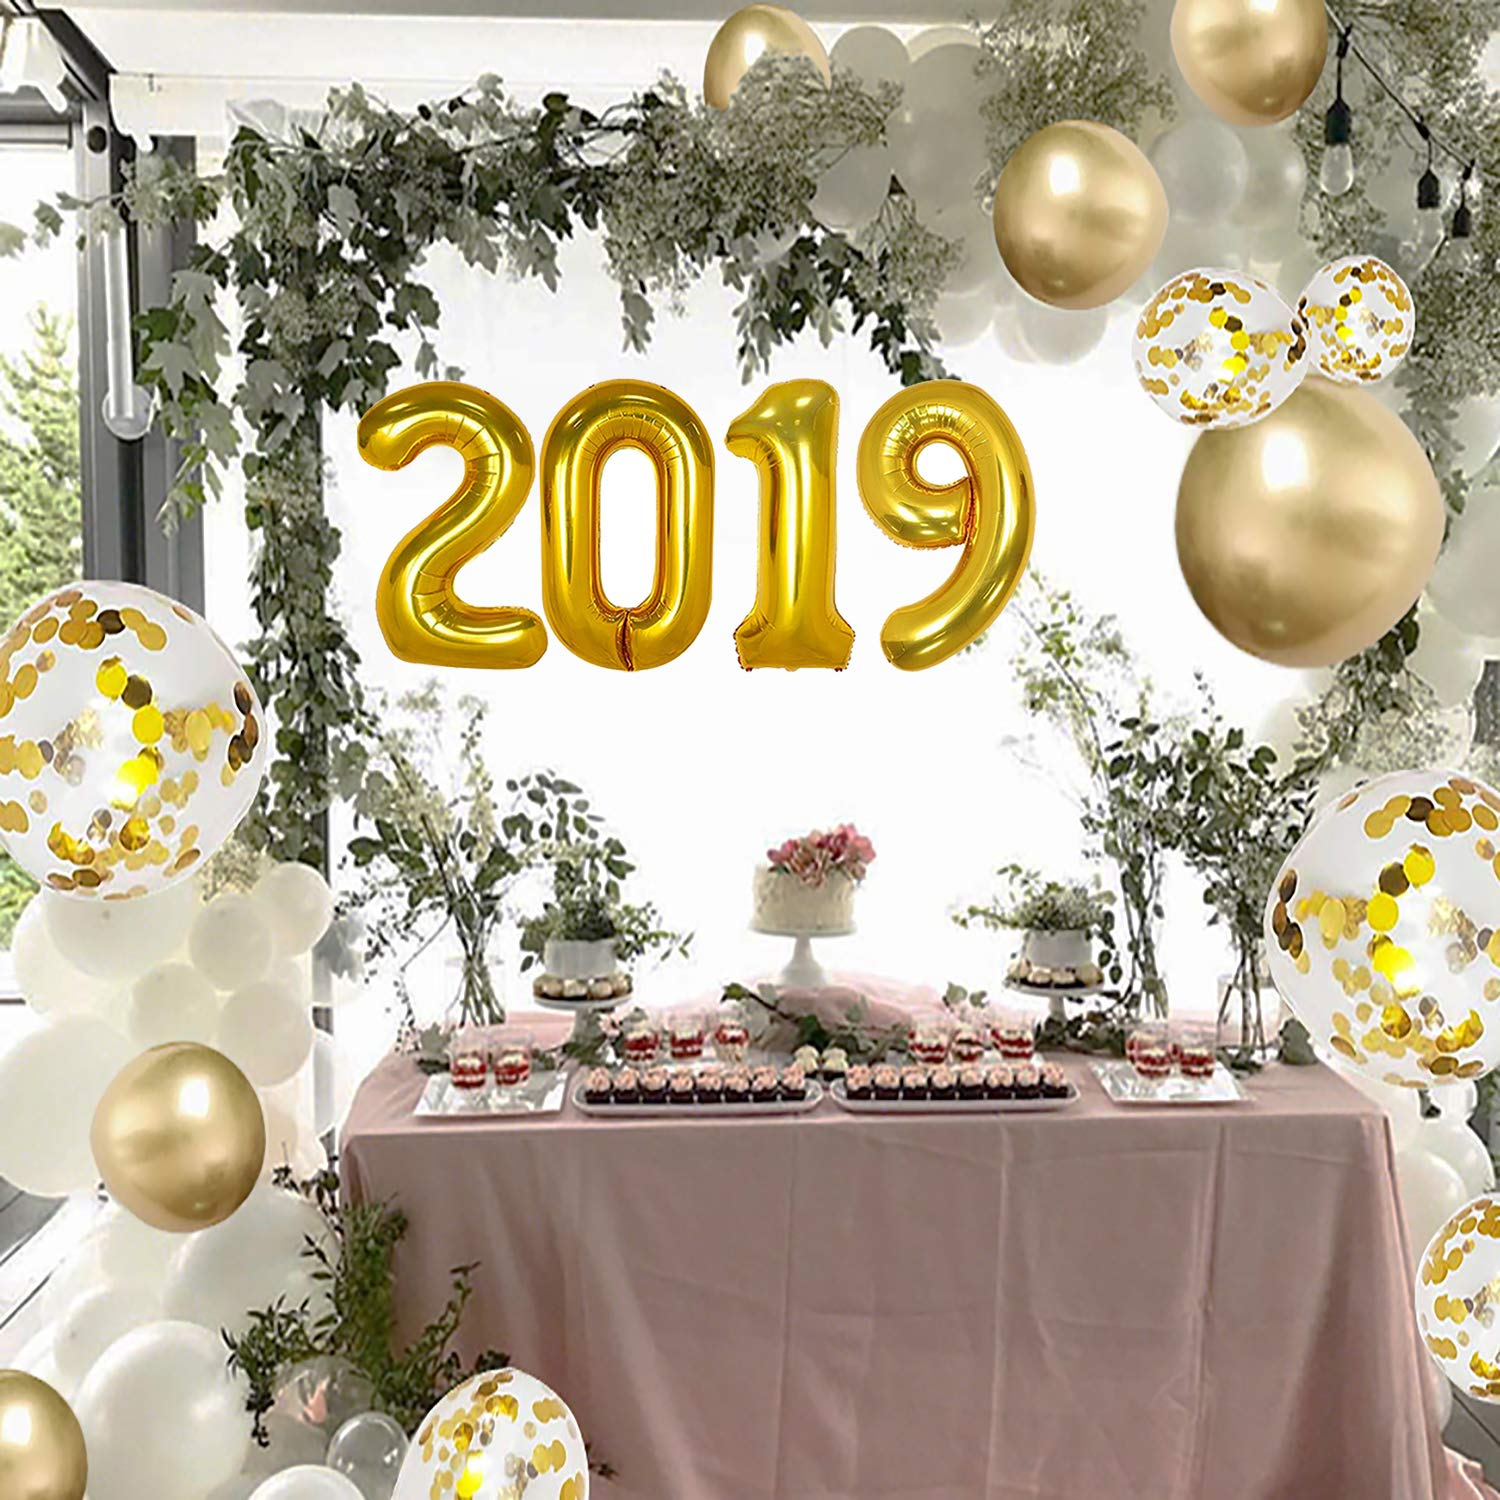 2019 Balloons/Gold Confetti Balloon Set/Graduation Balloons - 40 Inch Large 2019 Balloons with Gold,Gold Confetti Balloons(12 Inch), for More Parties